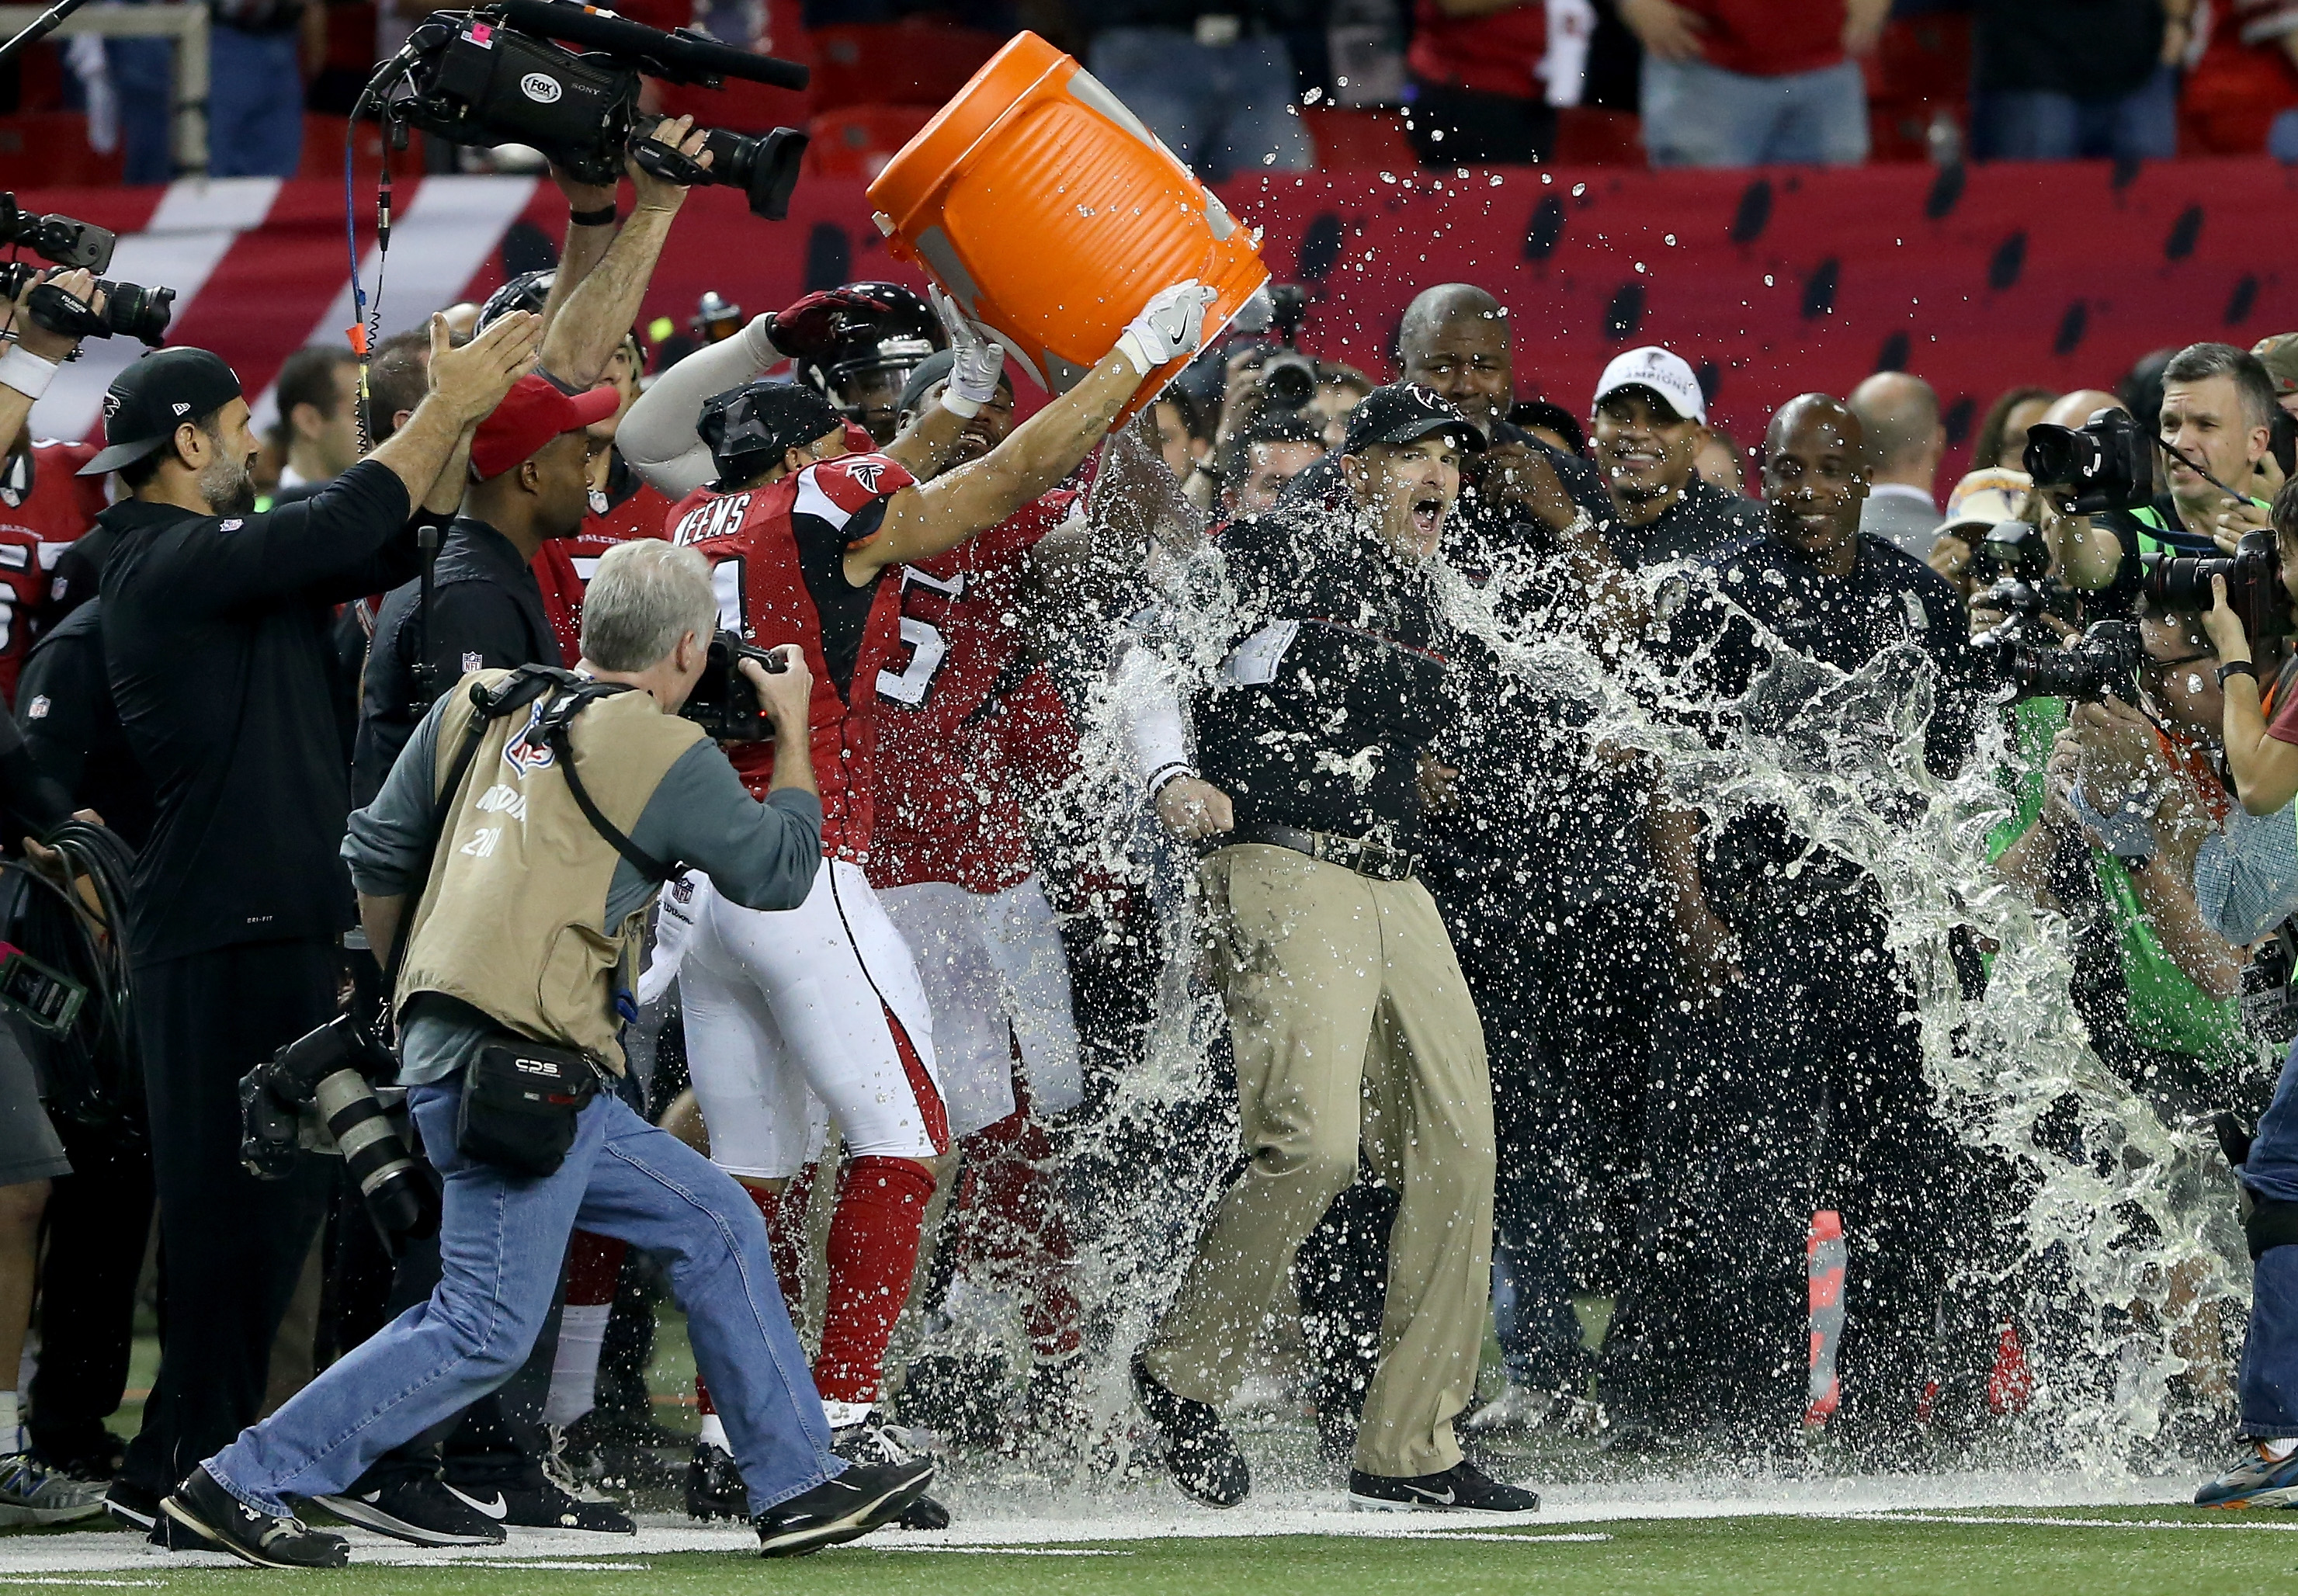 Can the Atlanta Falcons repeat this scene from their NFC Championship Game victory over the Green Bay Packers? (Getty Images)